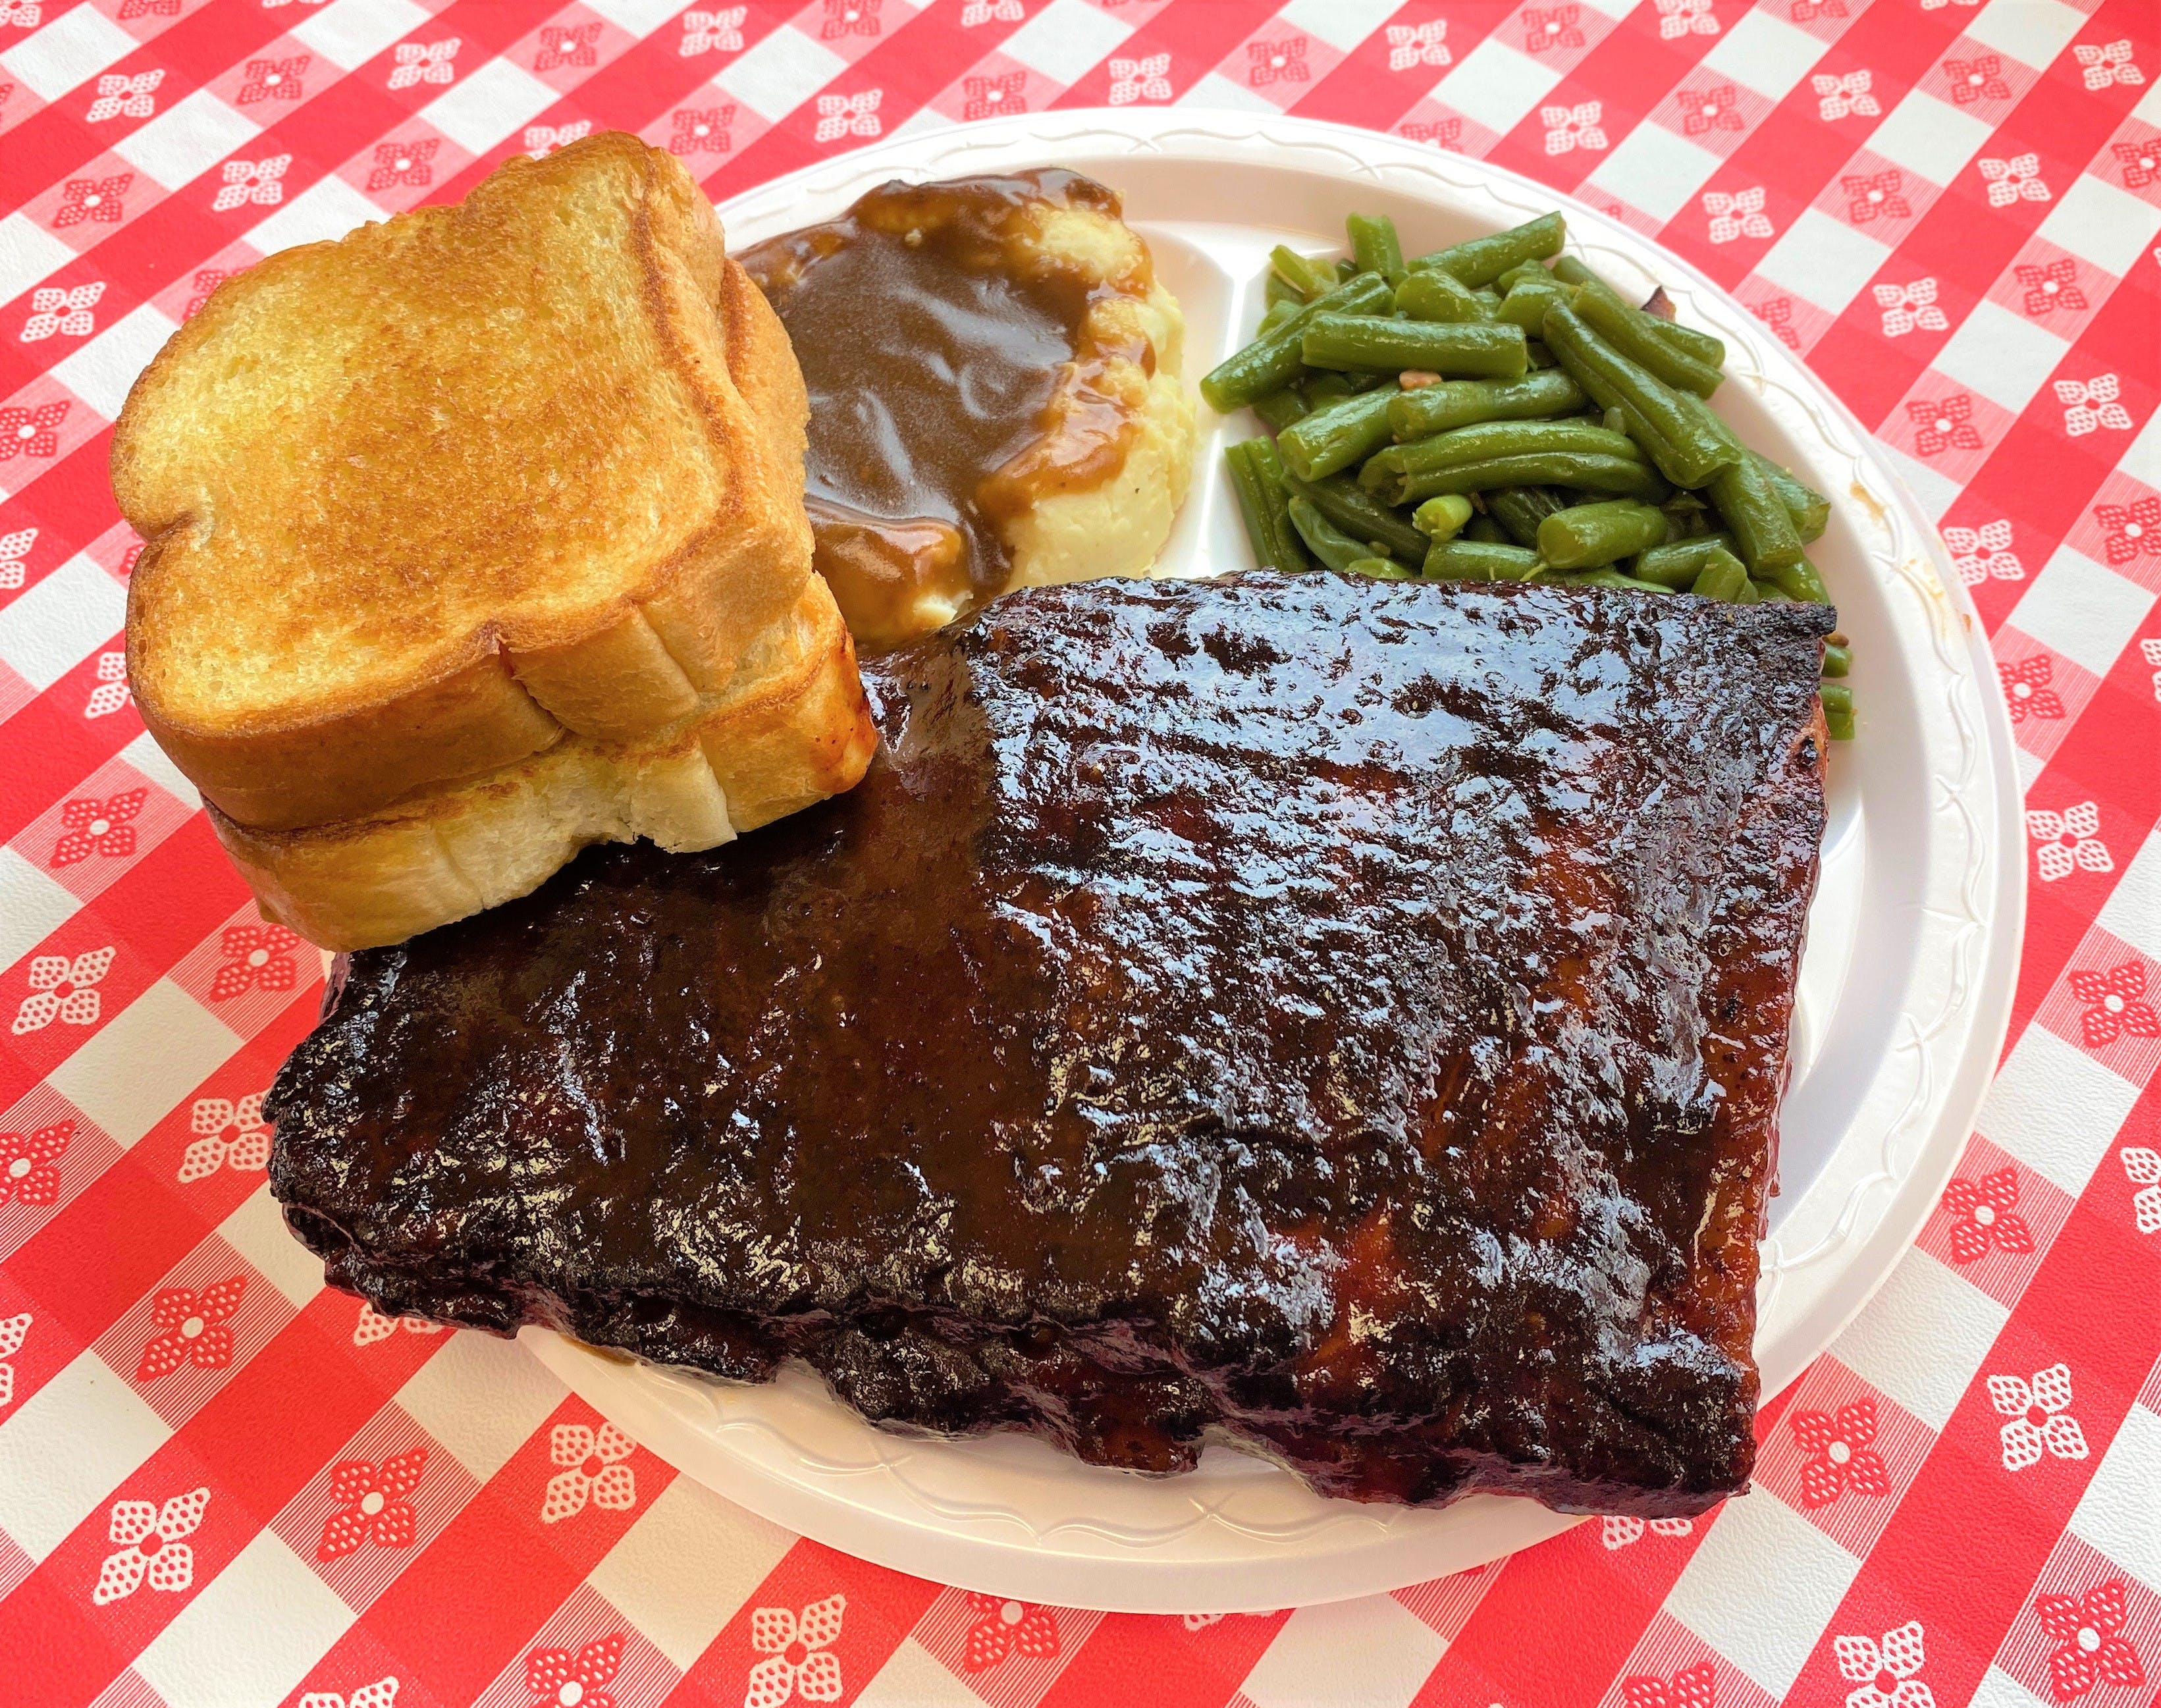 Rib Dinner from Hog Wild Pit BBQ & Catering in Lawrence, KS